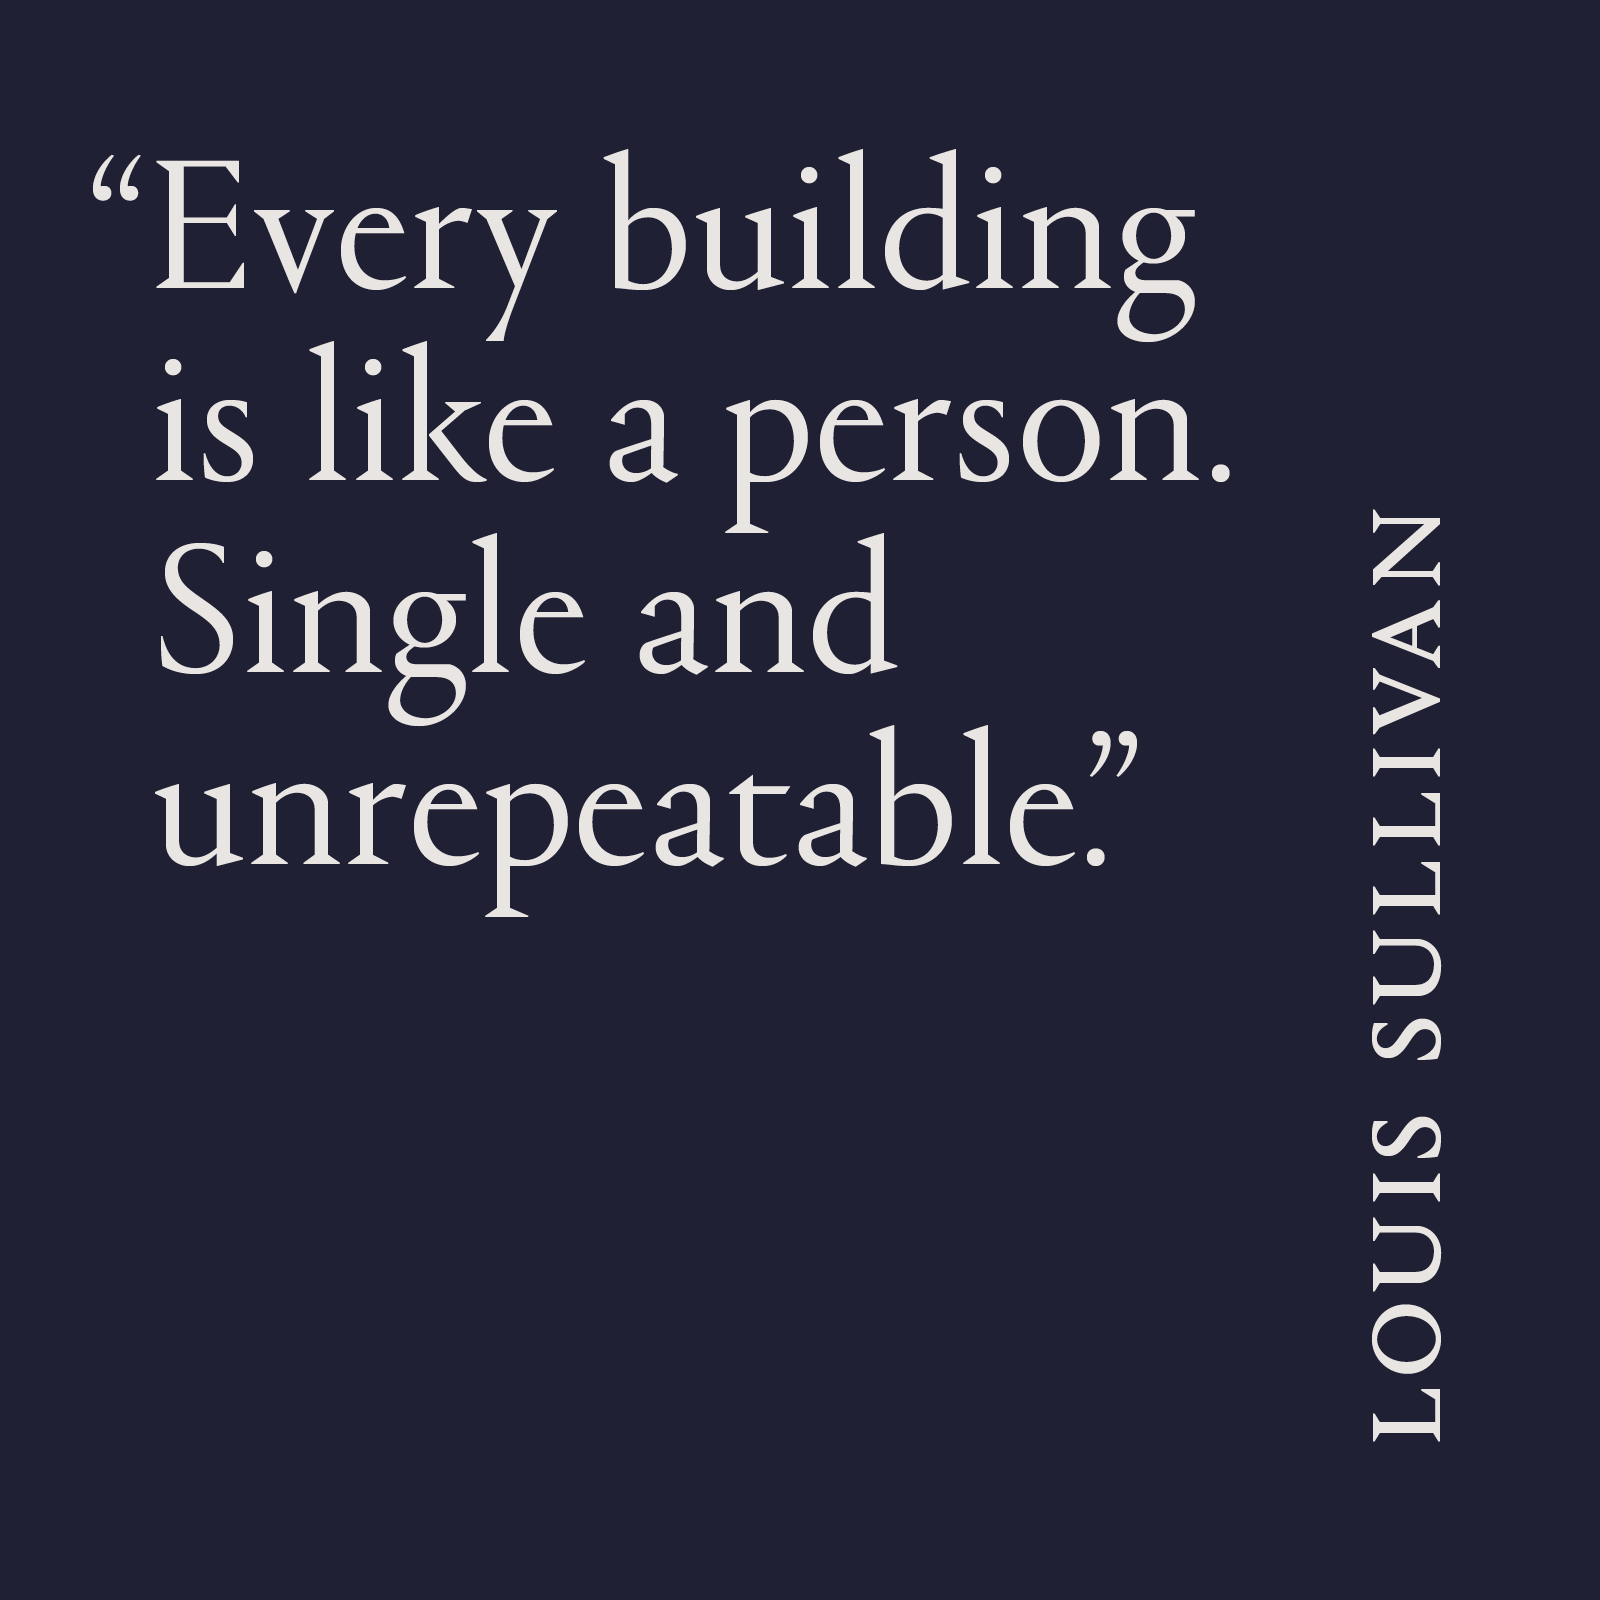 HCO-LouisSullivan-Quote